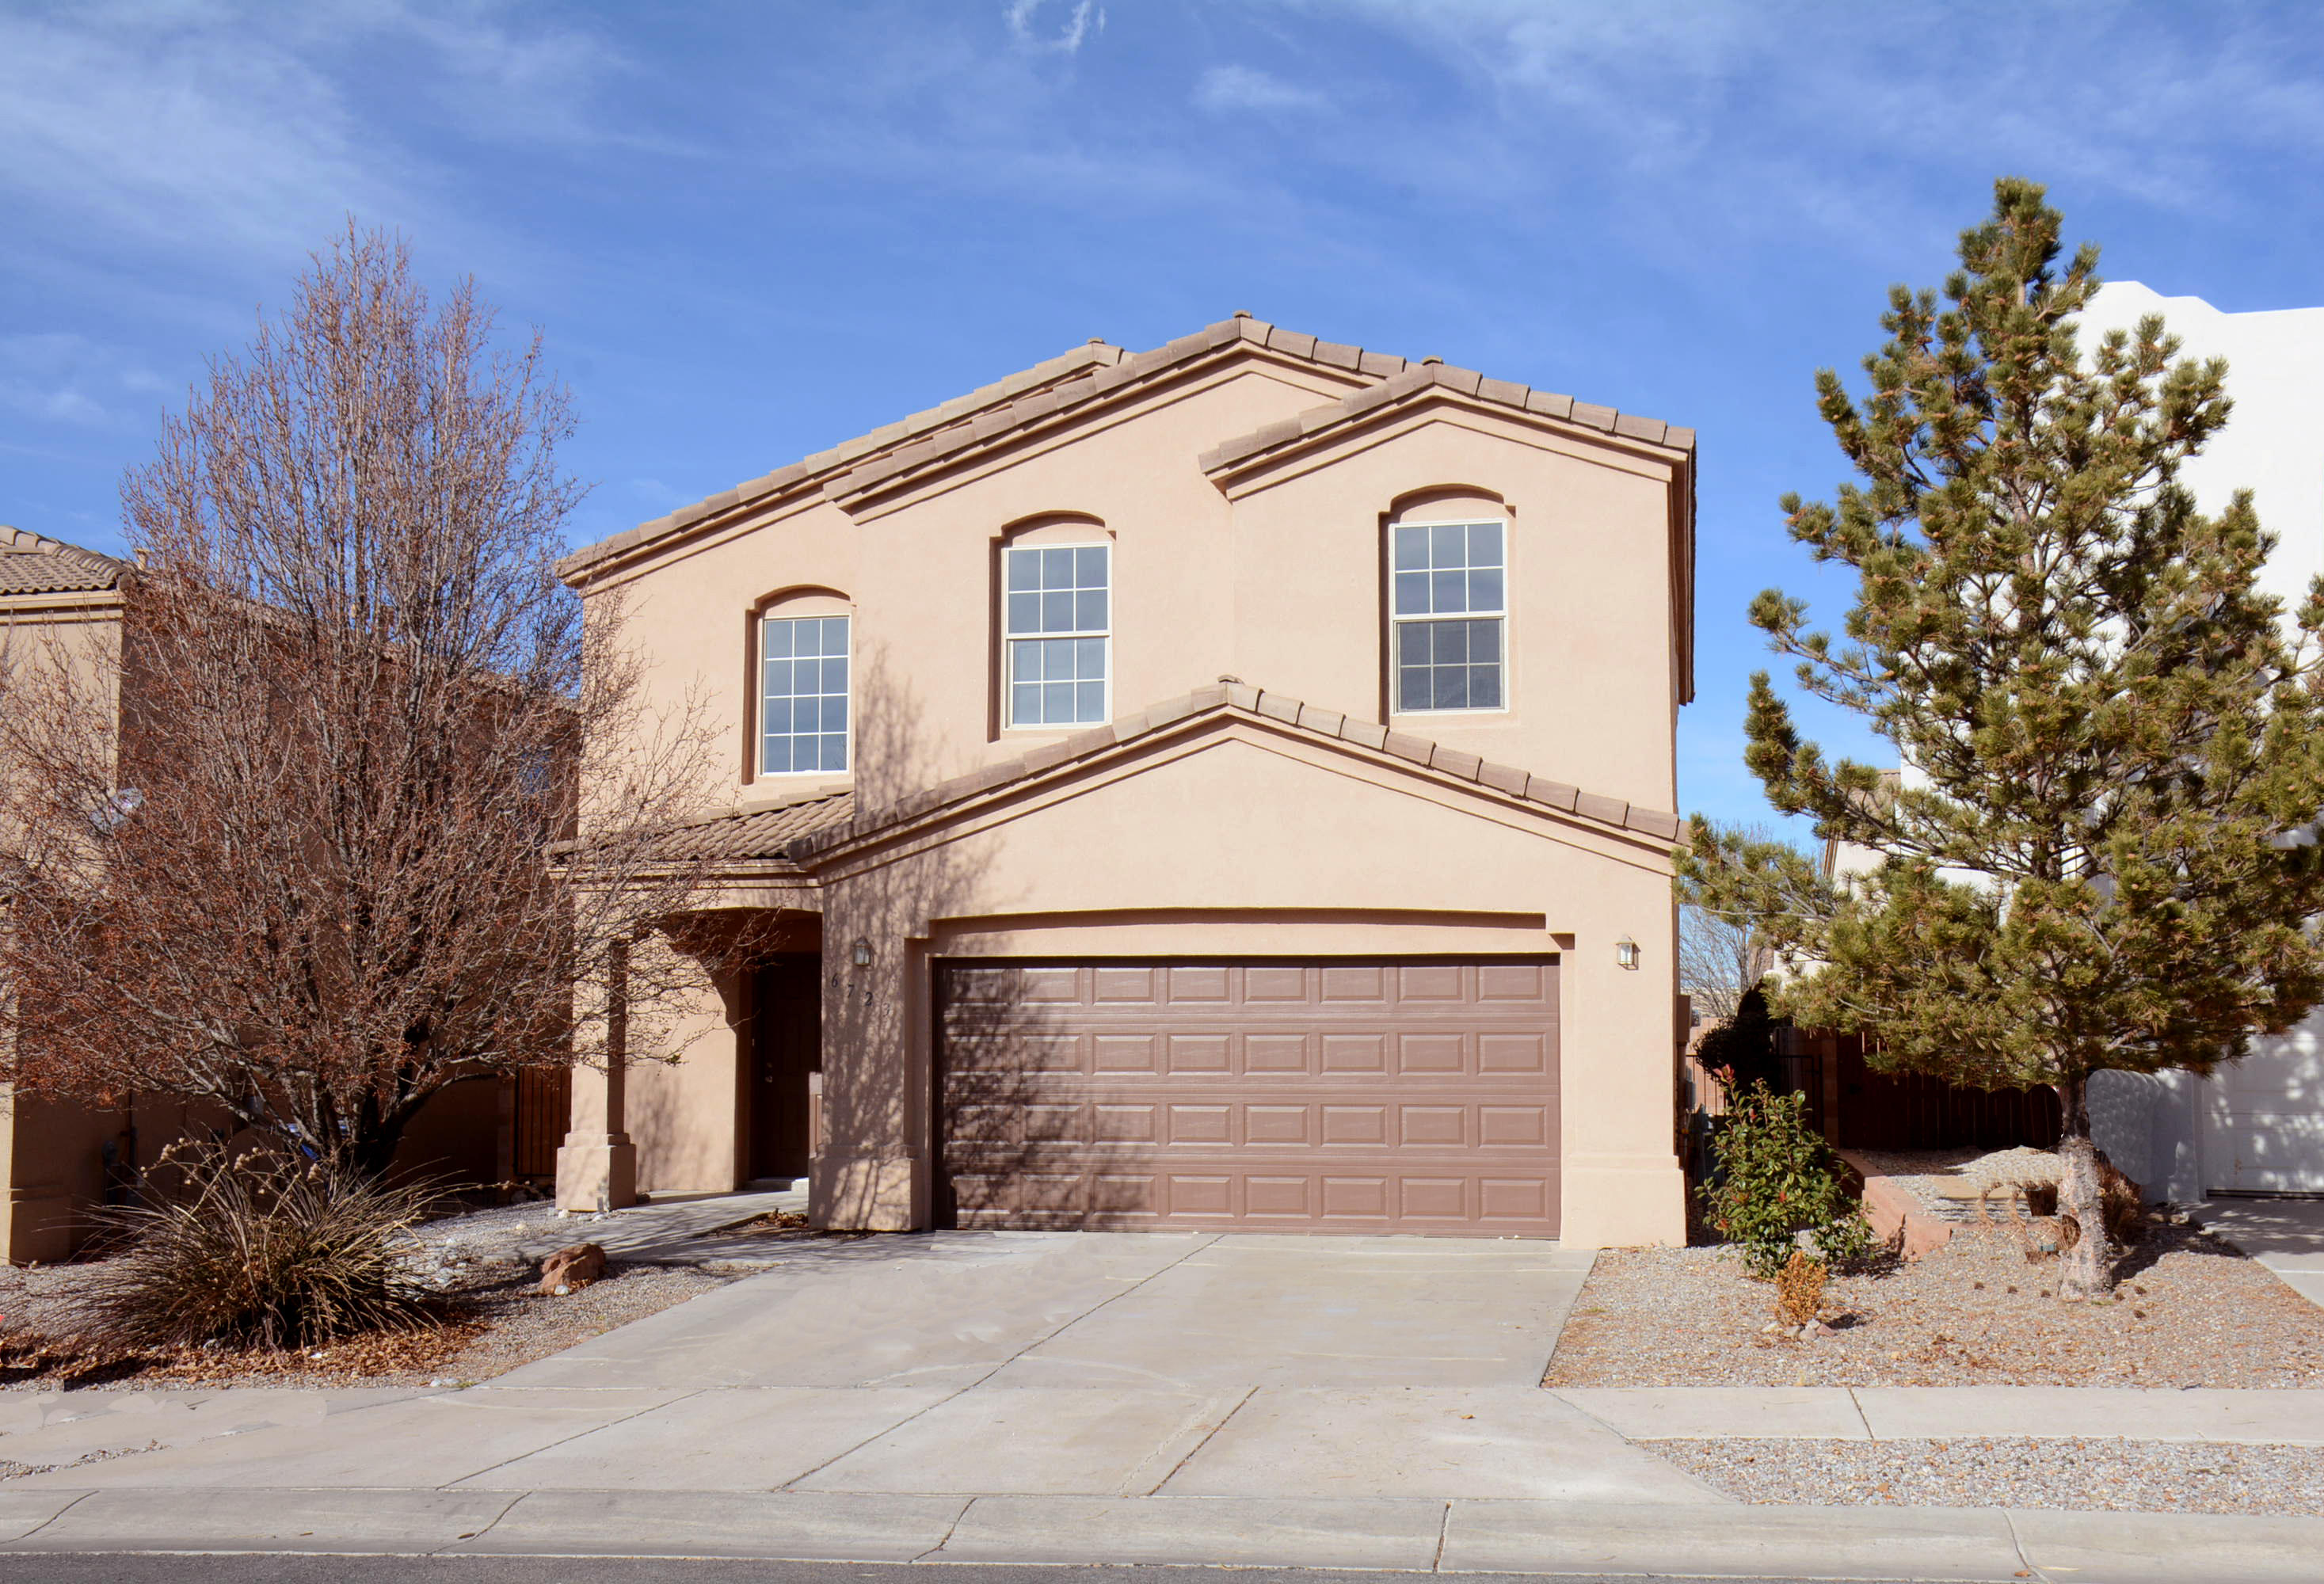 6723 Glenlochy Way, Albuquerque NM 87113